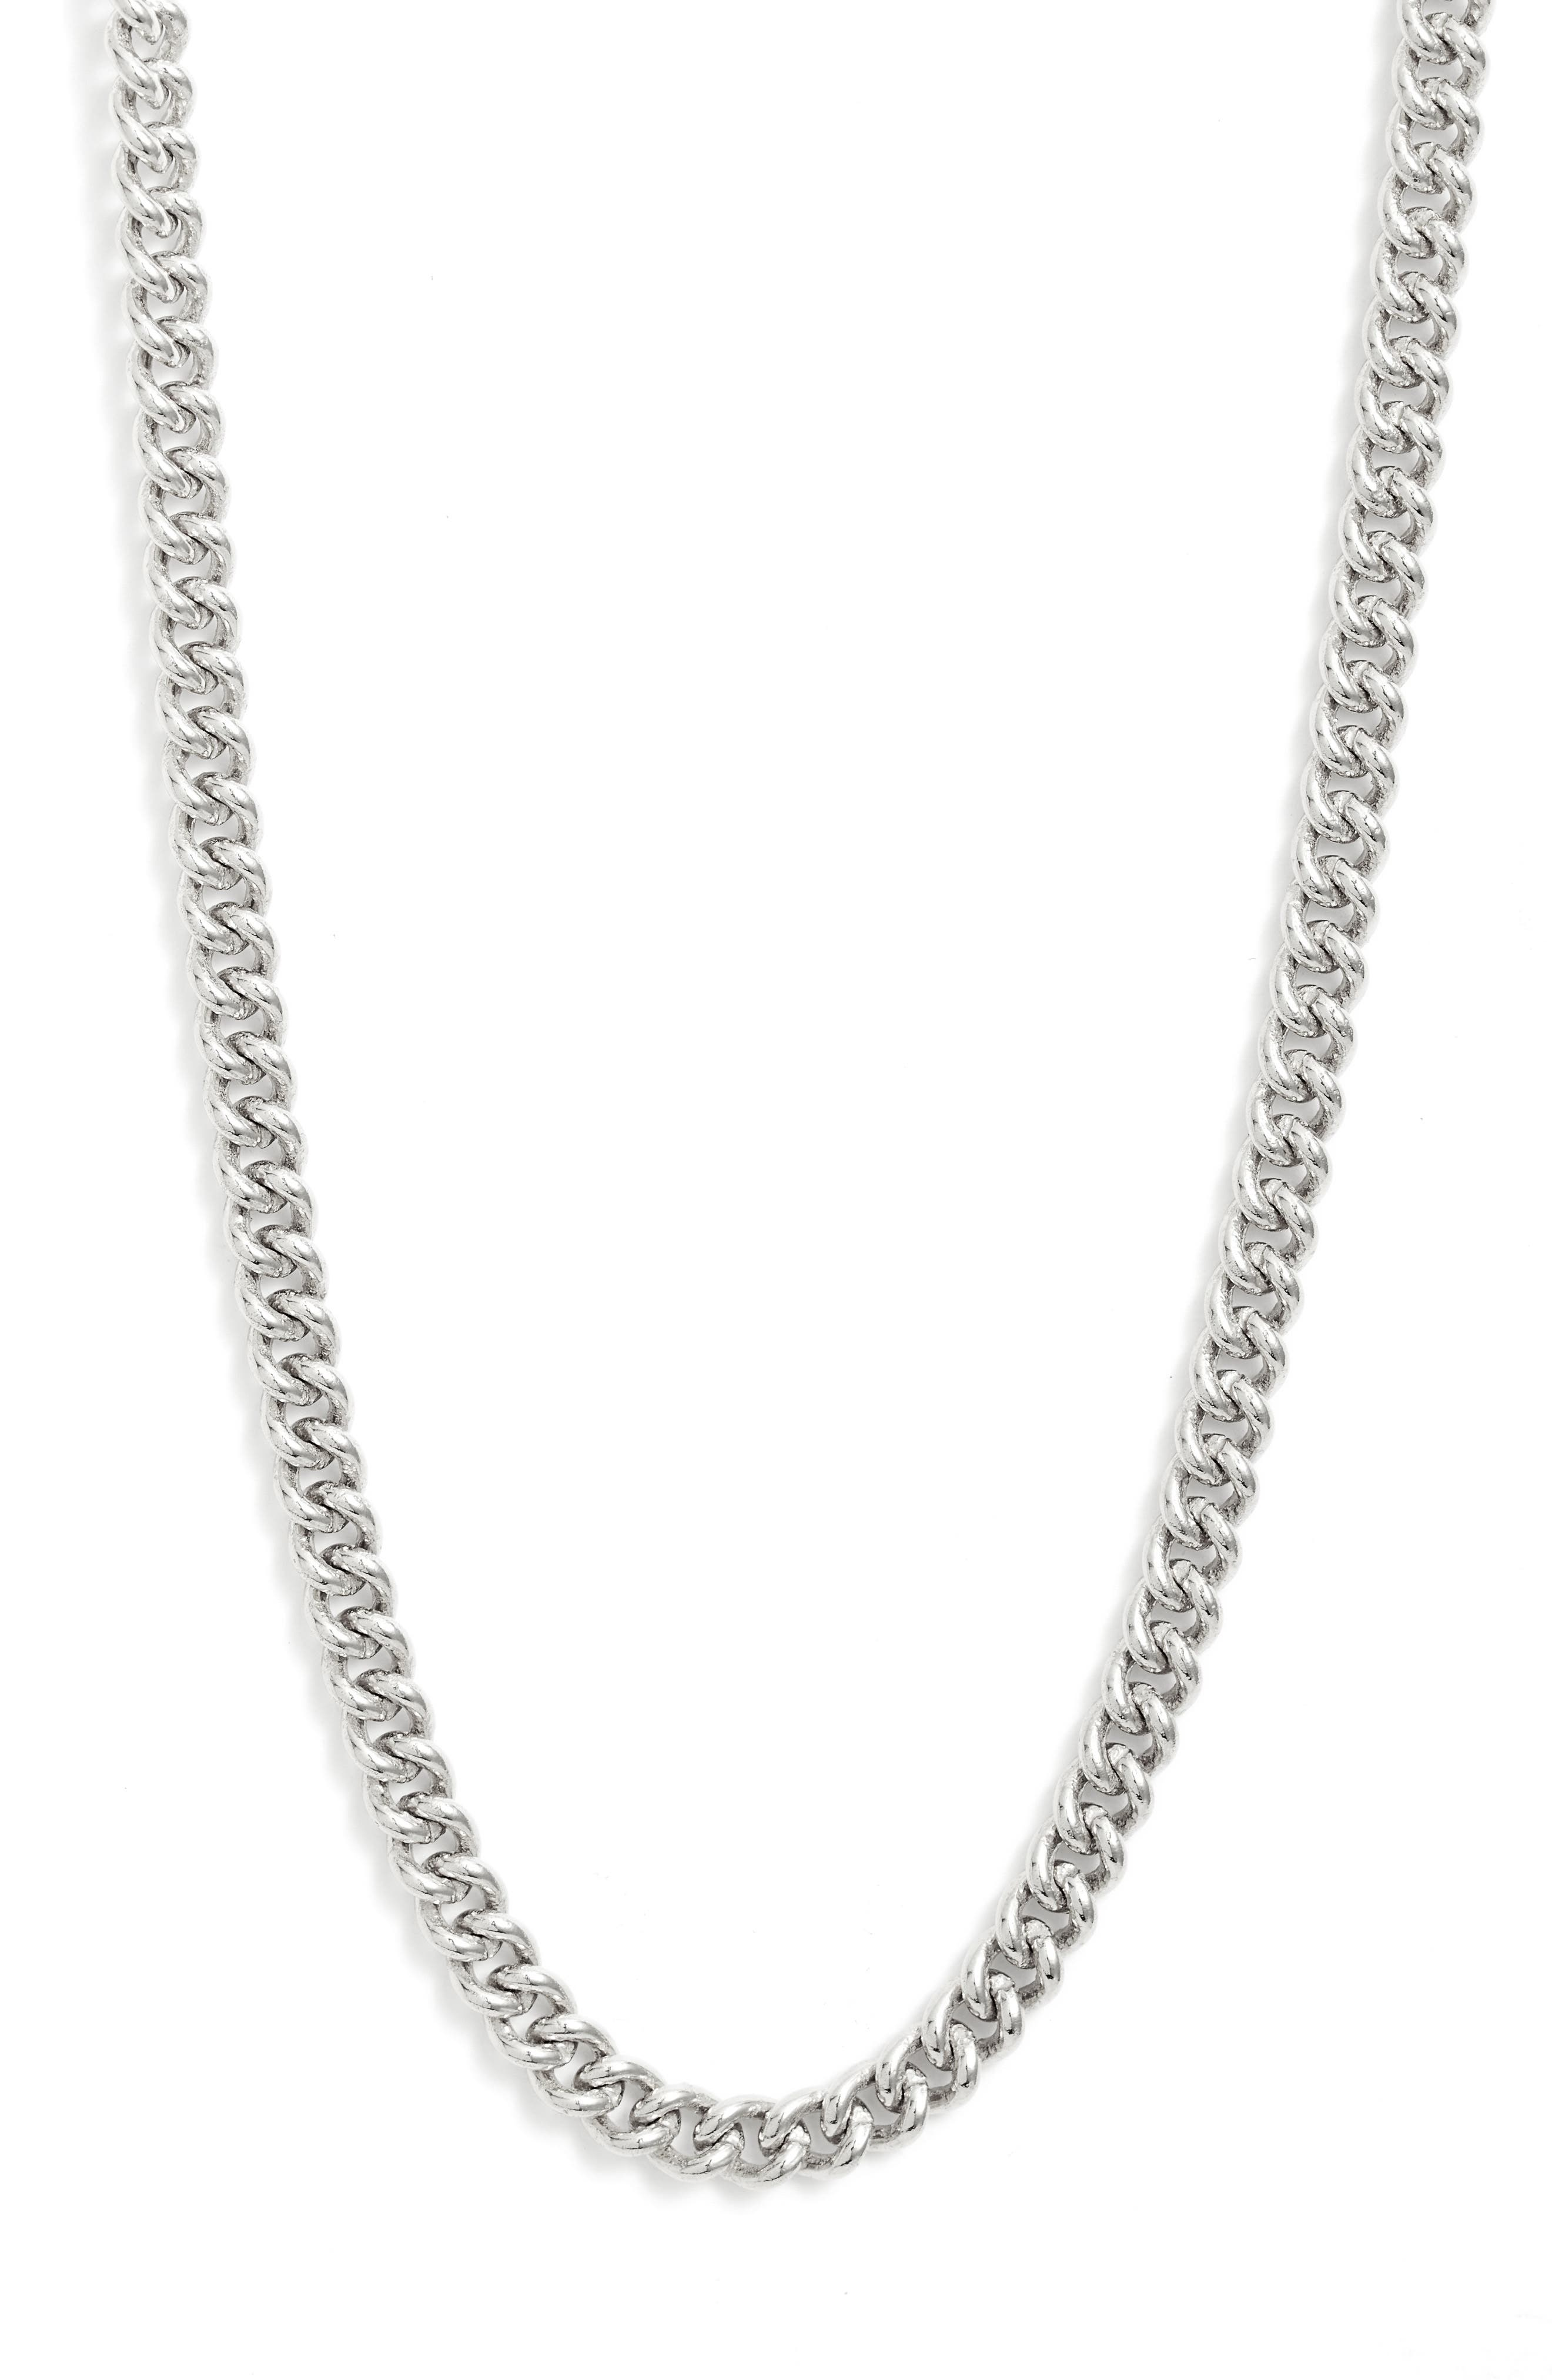 Chain Link Multiwear Necklace